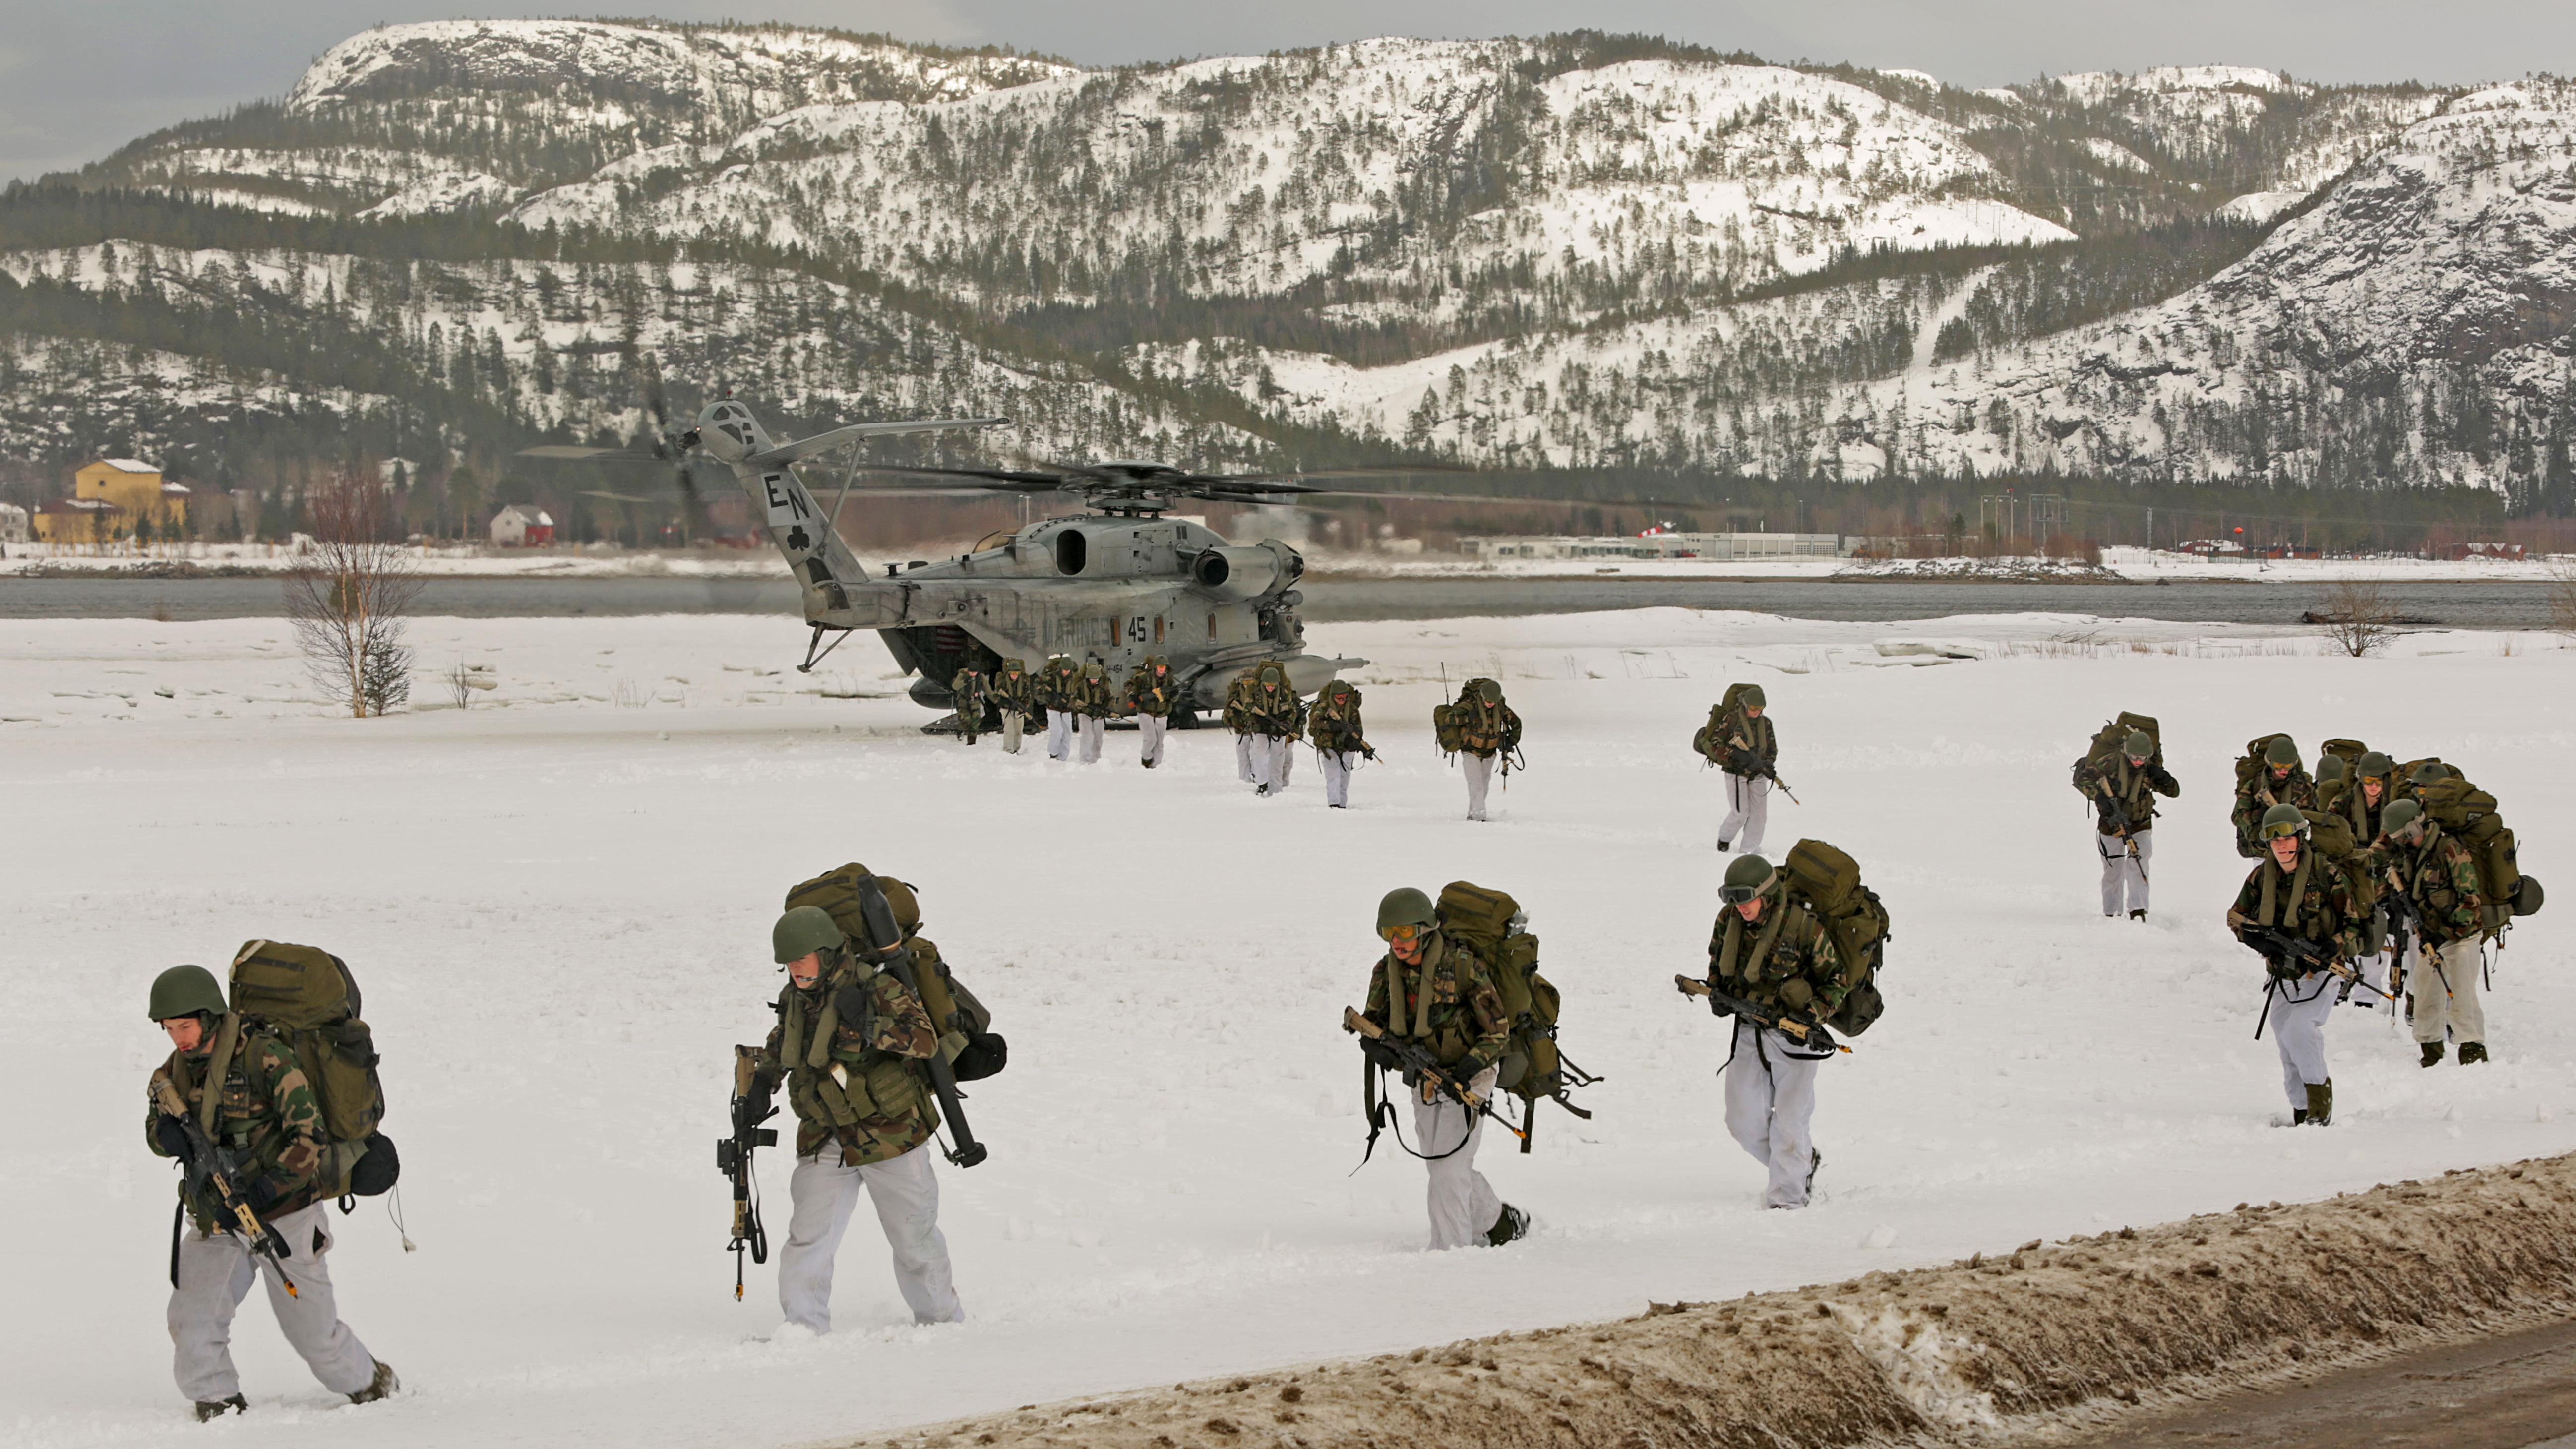 Norway's border with Russia profoundly shapes its Arctic security policy, says study